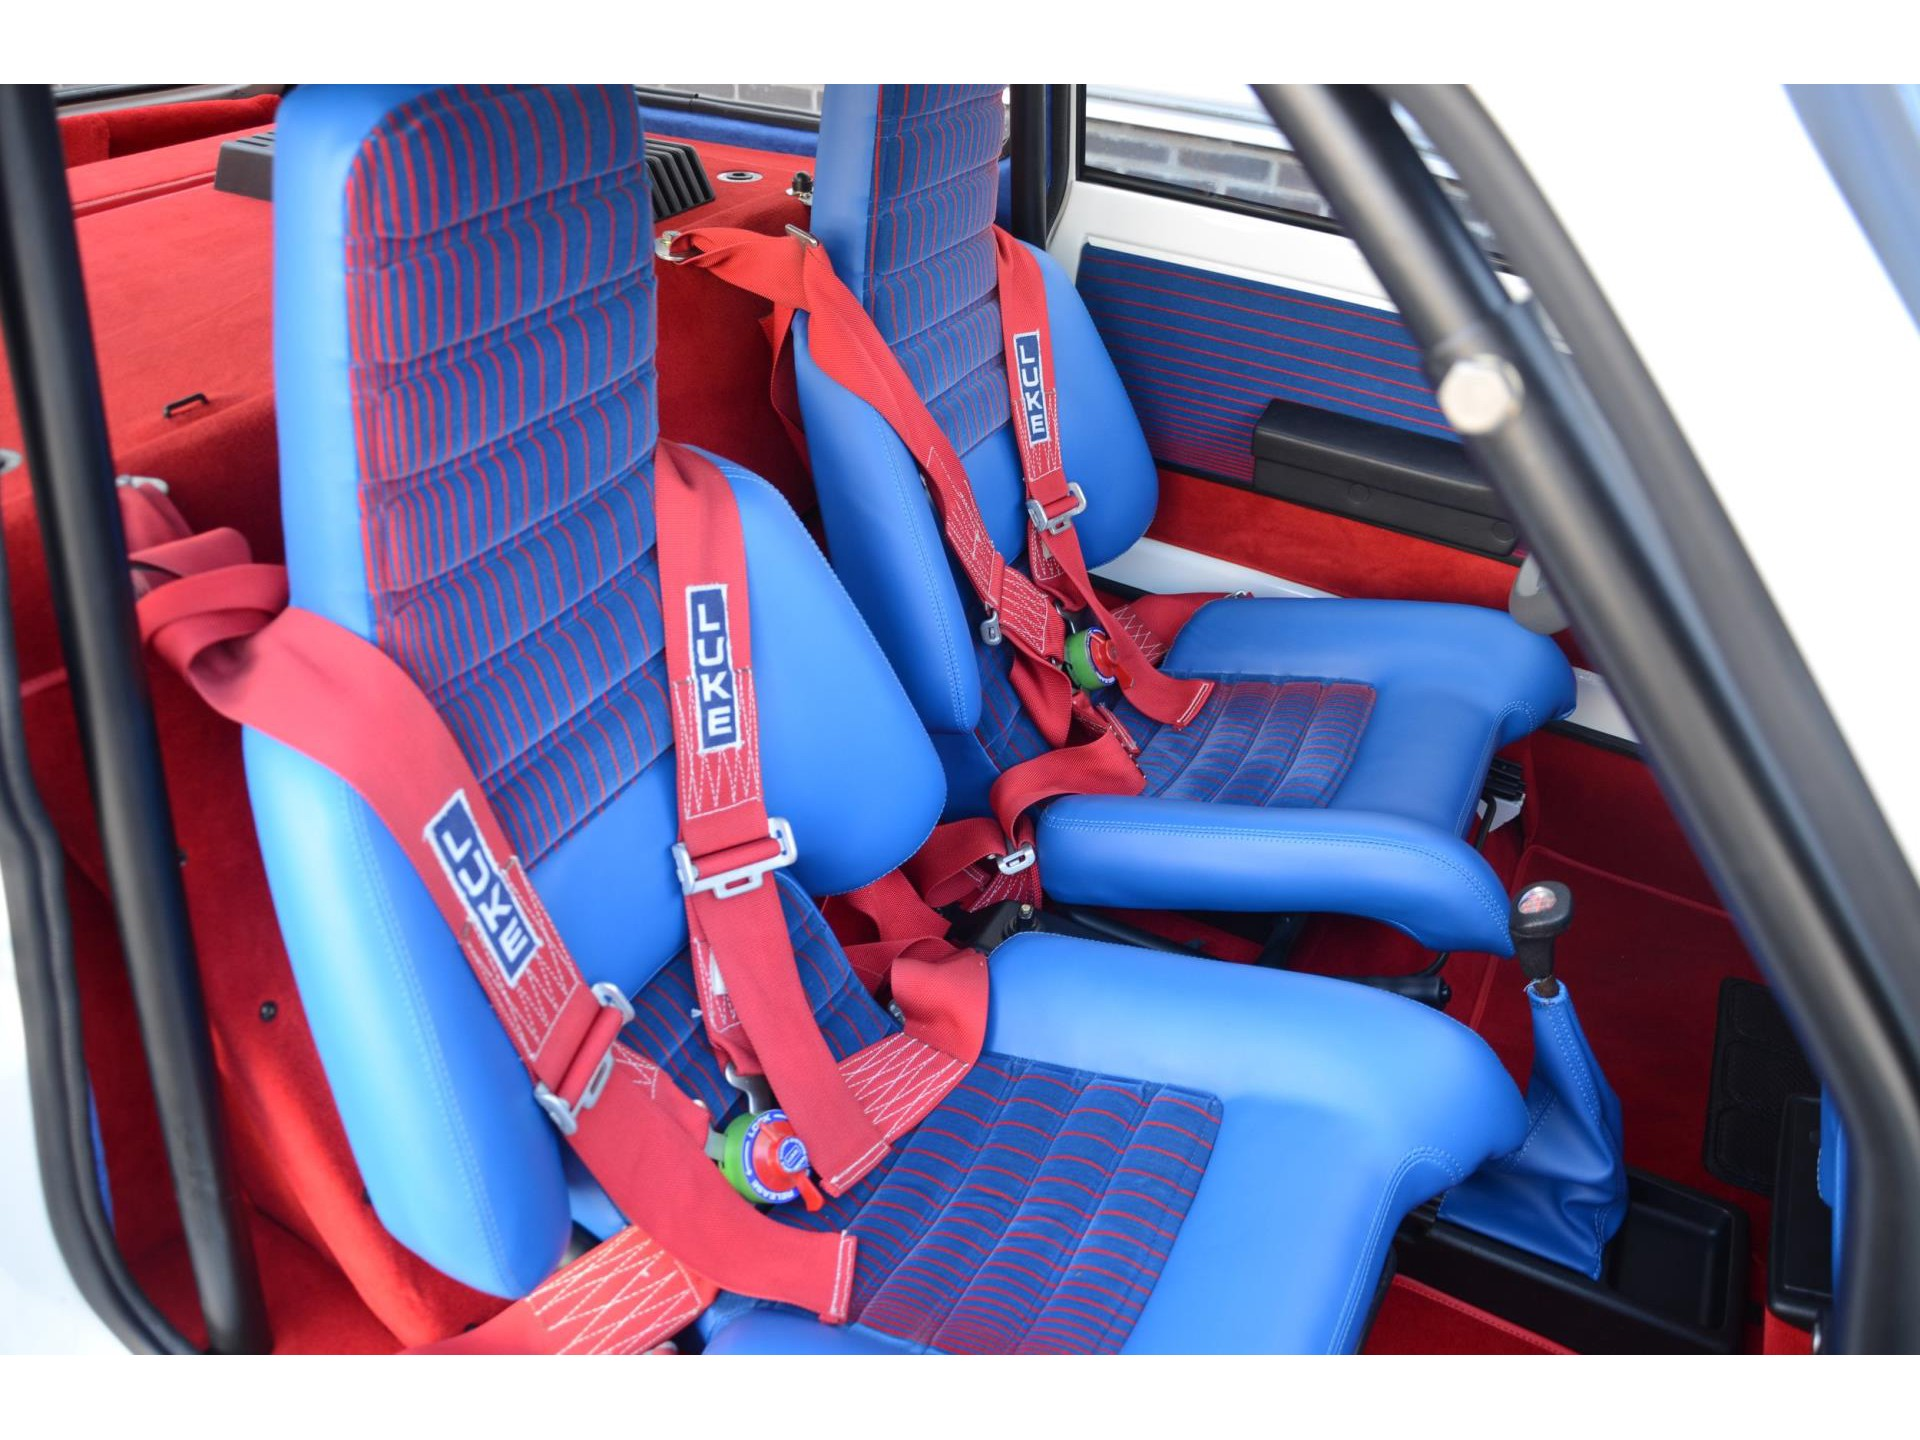 Renault-5-Turbo-Series-1-for-sale-68